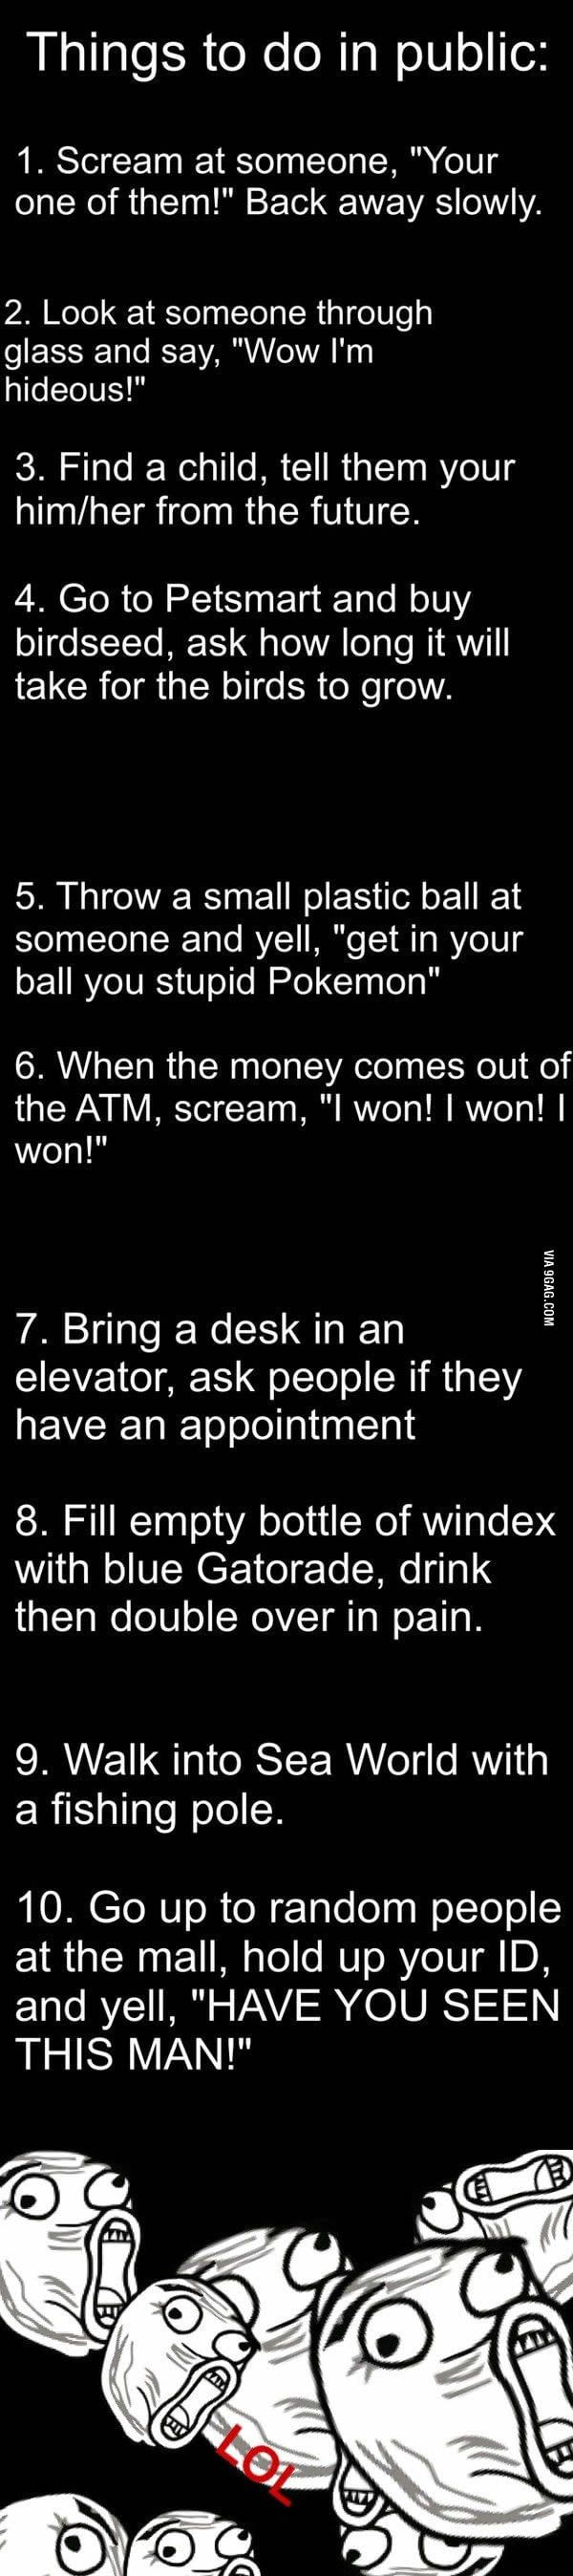 things to do in public memes funny things pinterest funny stuff to do and things to do. Black Bedroom Furniture Sets. Home Design Ideas